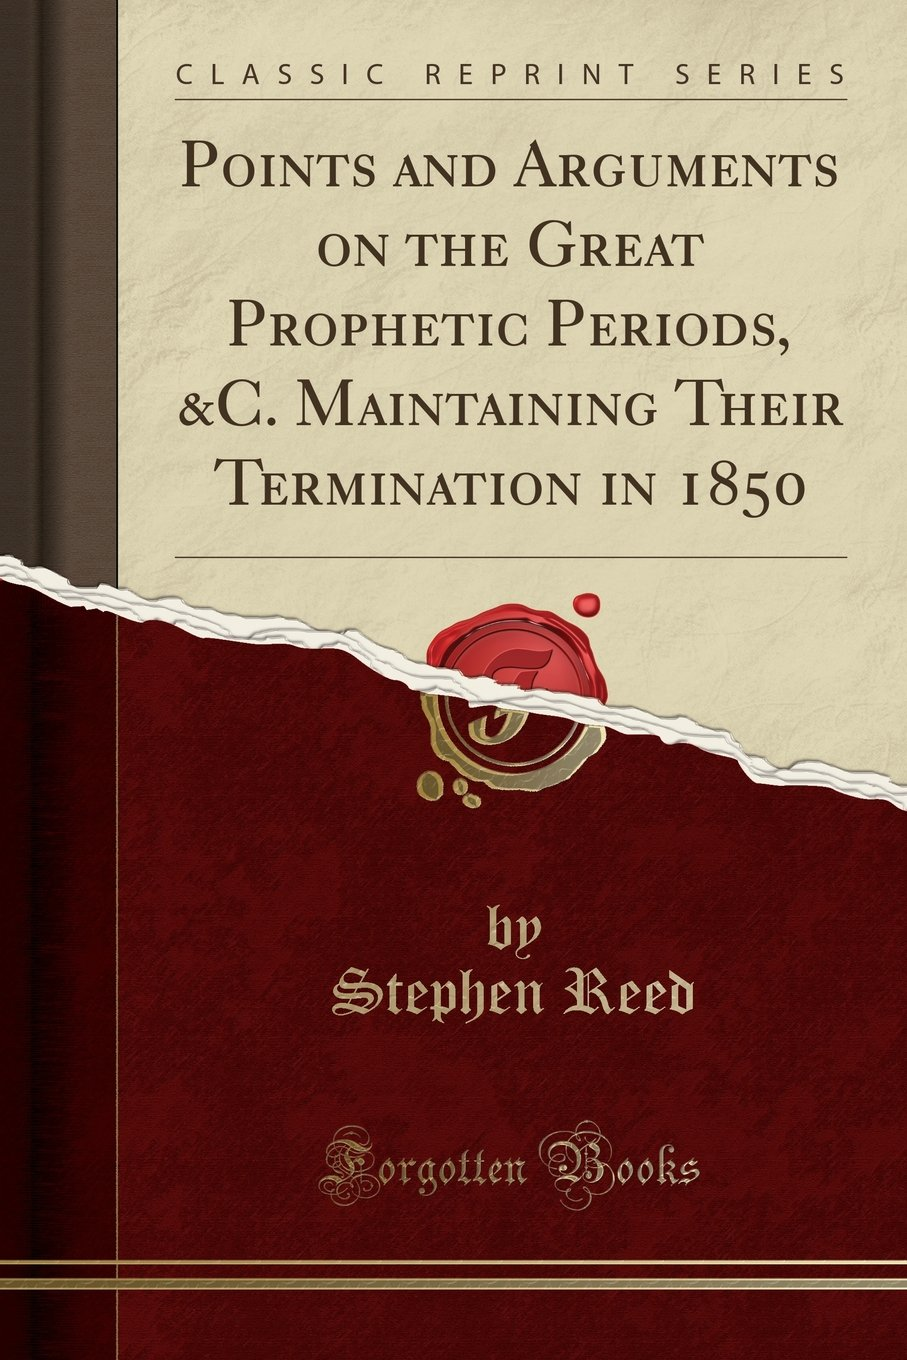 Download Points and Arguments on the Great Prophetic Periods, &C. Maintaining Their Termination in 1850 (Classic Reprint) PDF